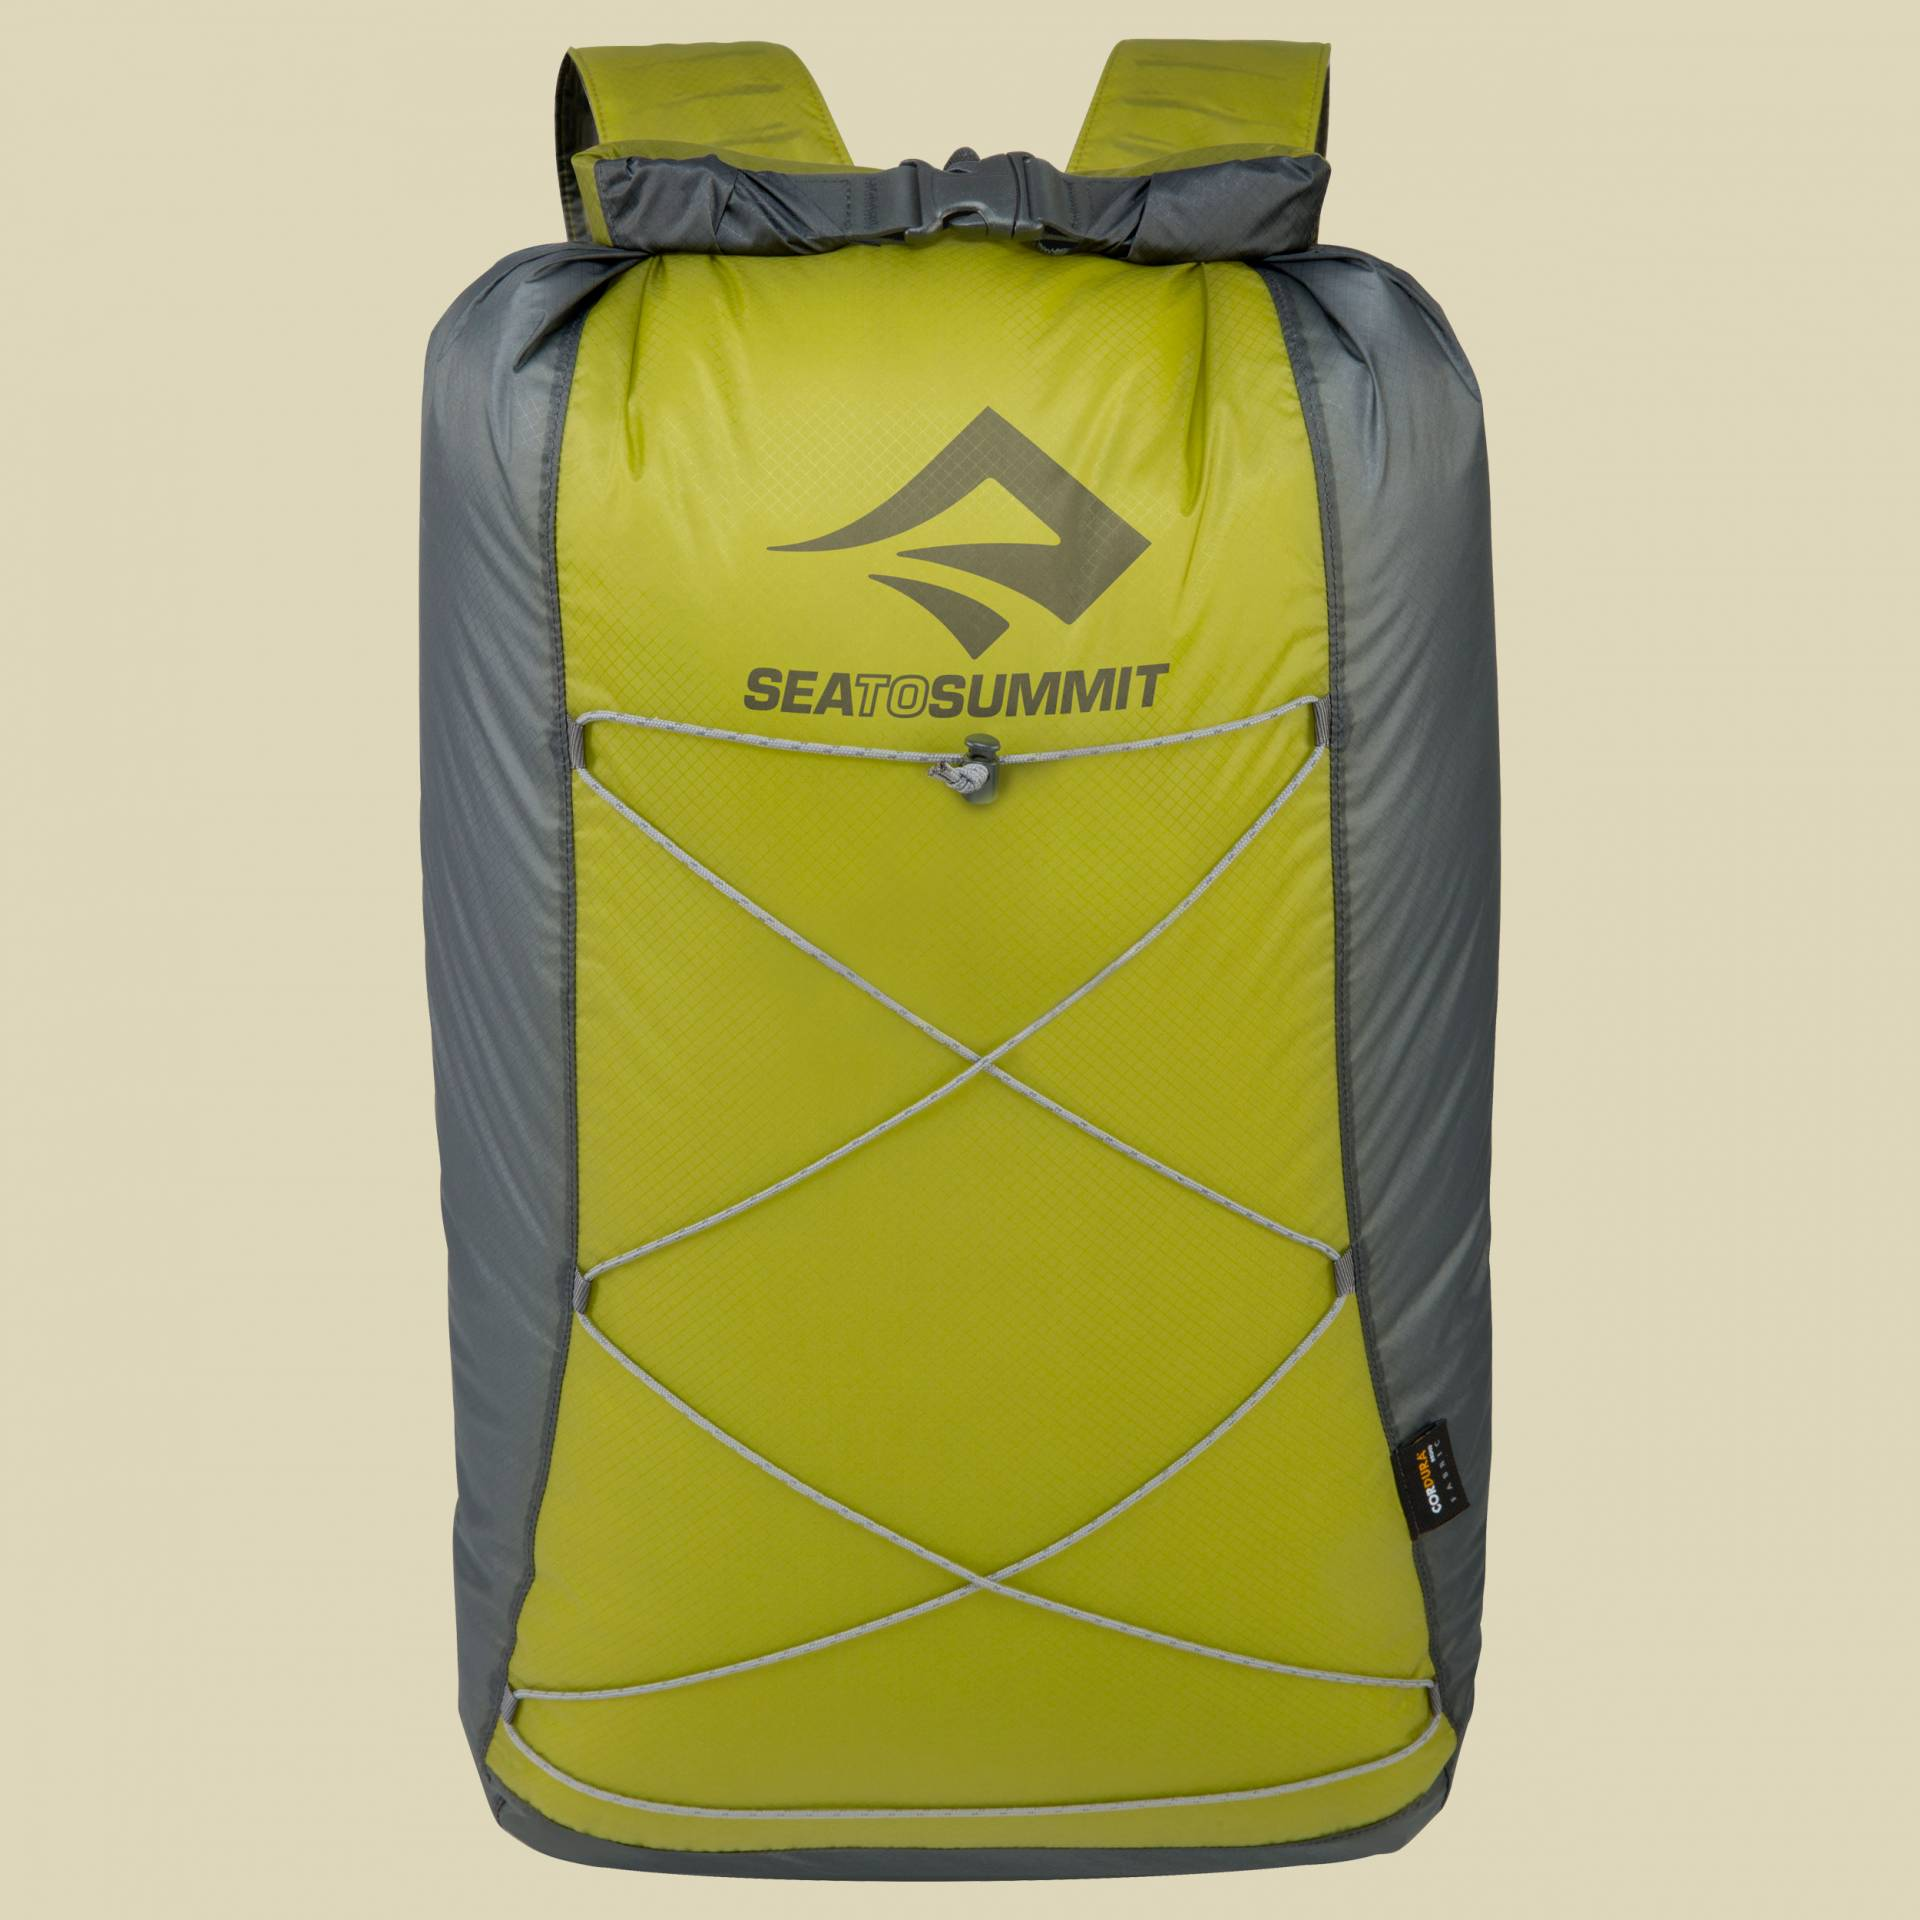 Sea to Summit Ultra-Sil Dry Day Pack ultraleichter Daypack Volumen 22 lime von Sea to Summit